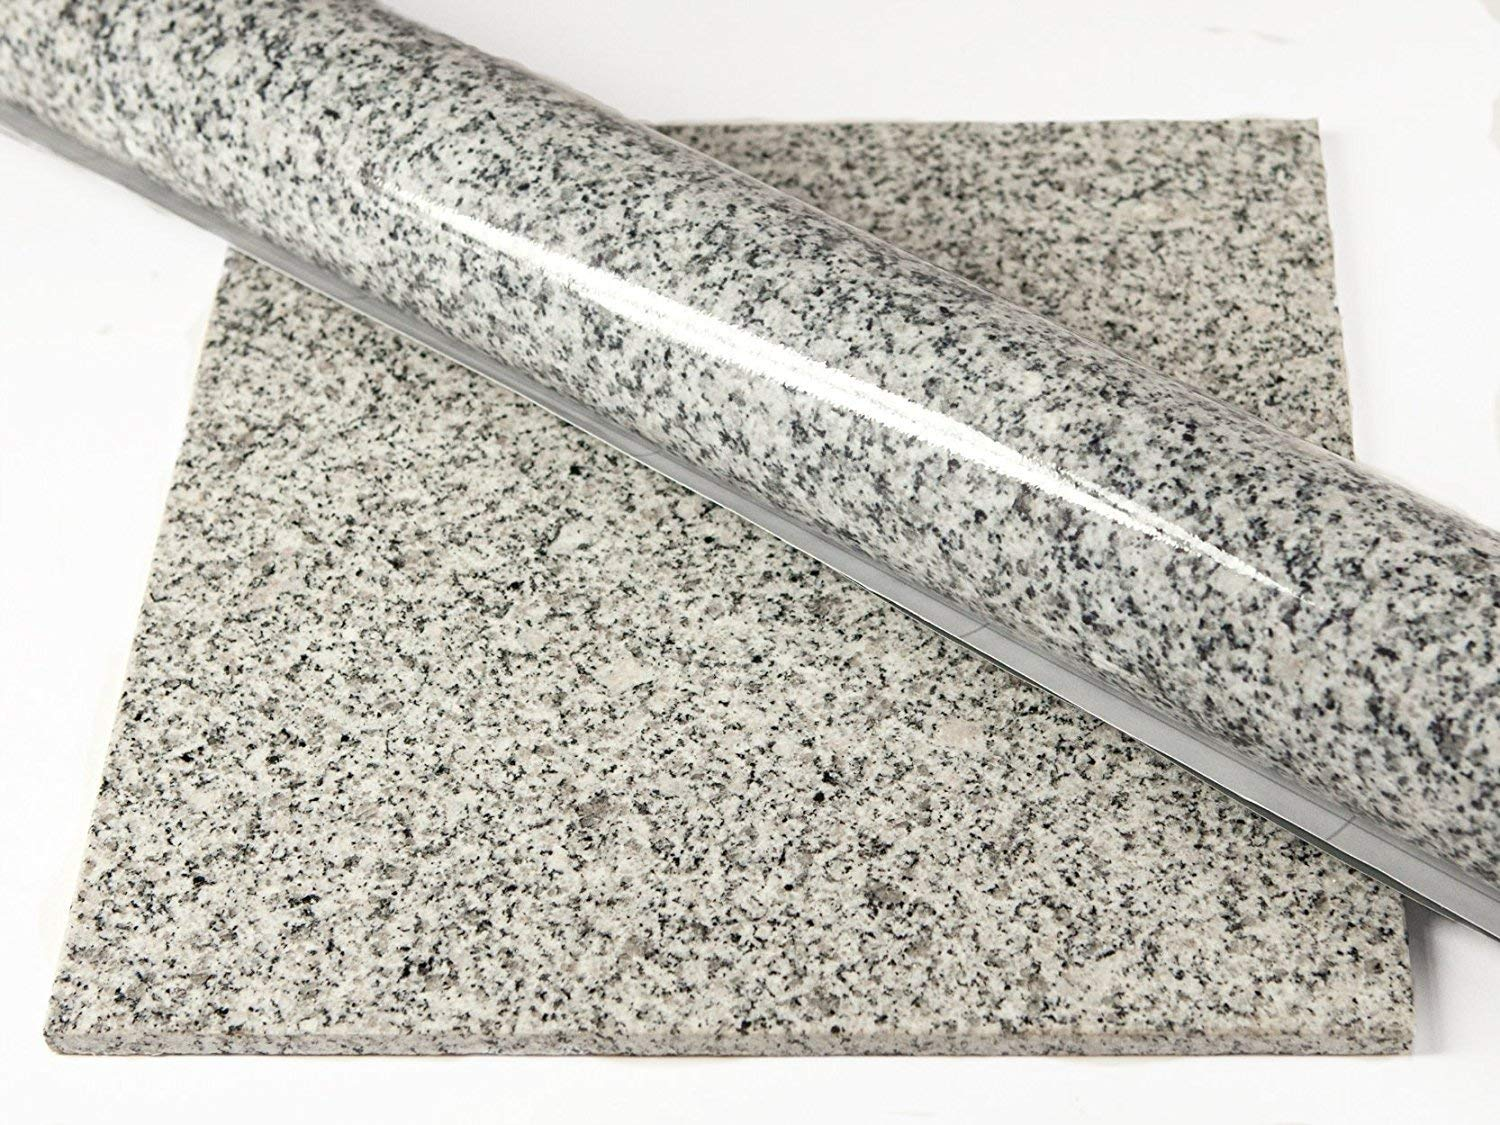 Instant Granite Luna Pearl Counter Top Film 36'' x 144'' Self Adhesive Vinyl Laminate Counter Top Contact Paper Faux Peel and Stick Self Application by Instant Granite (Image #5)